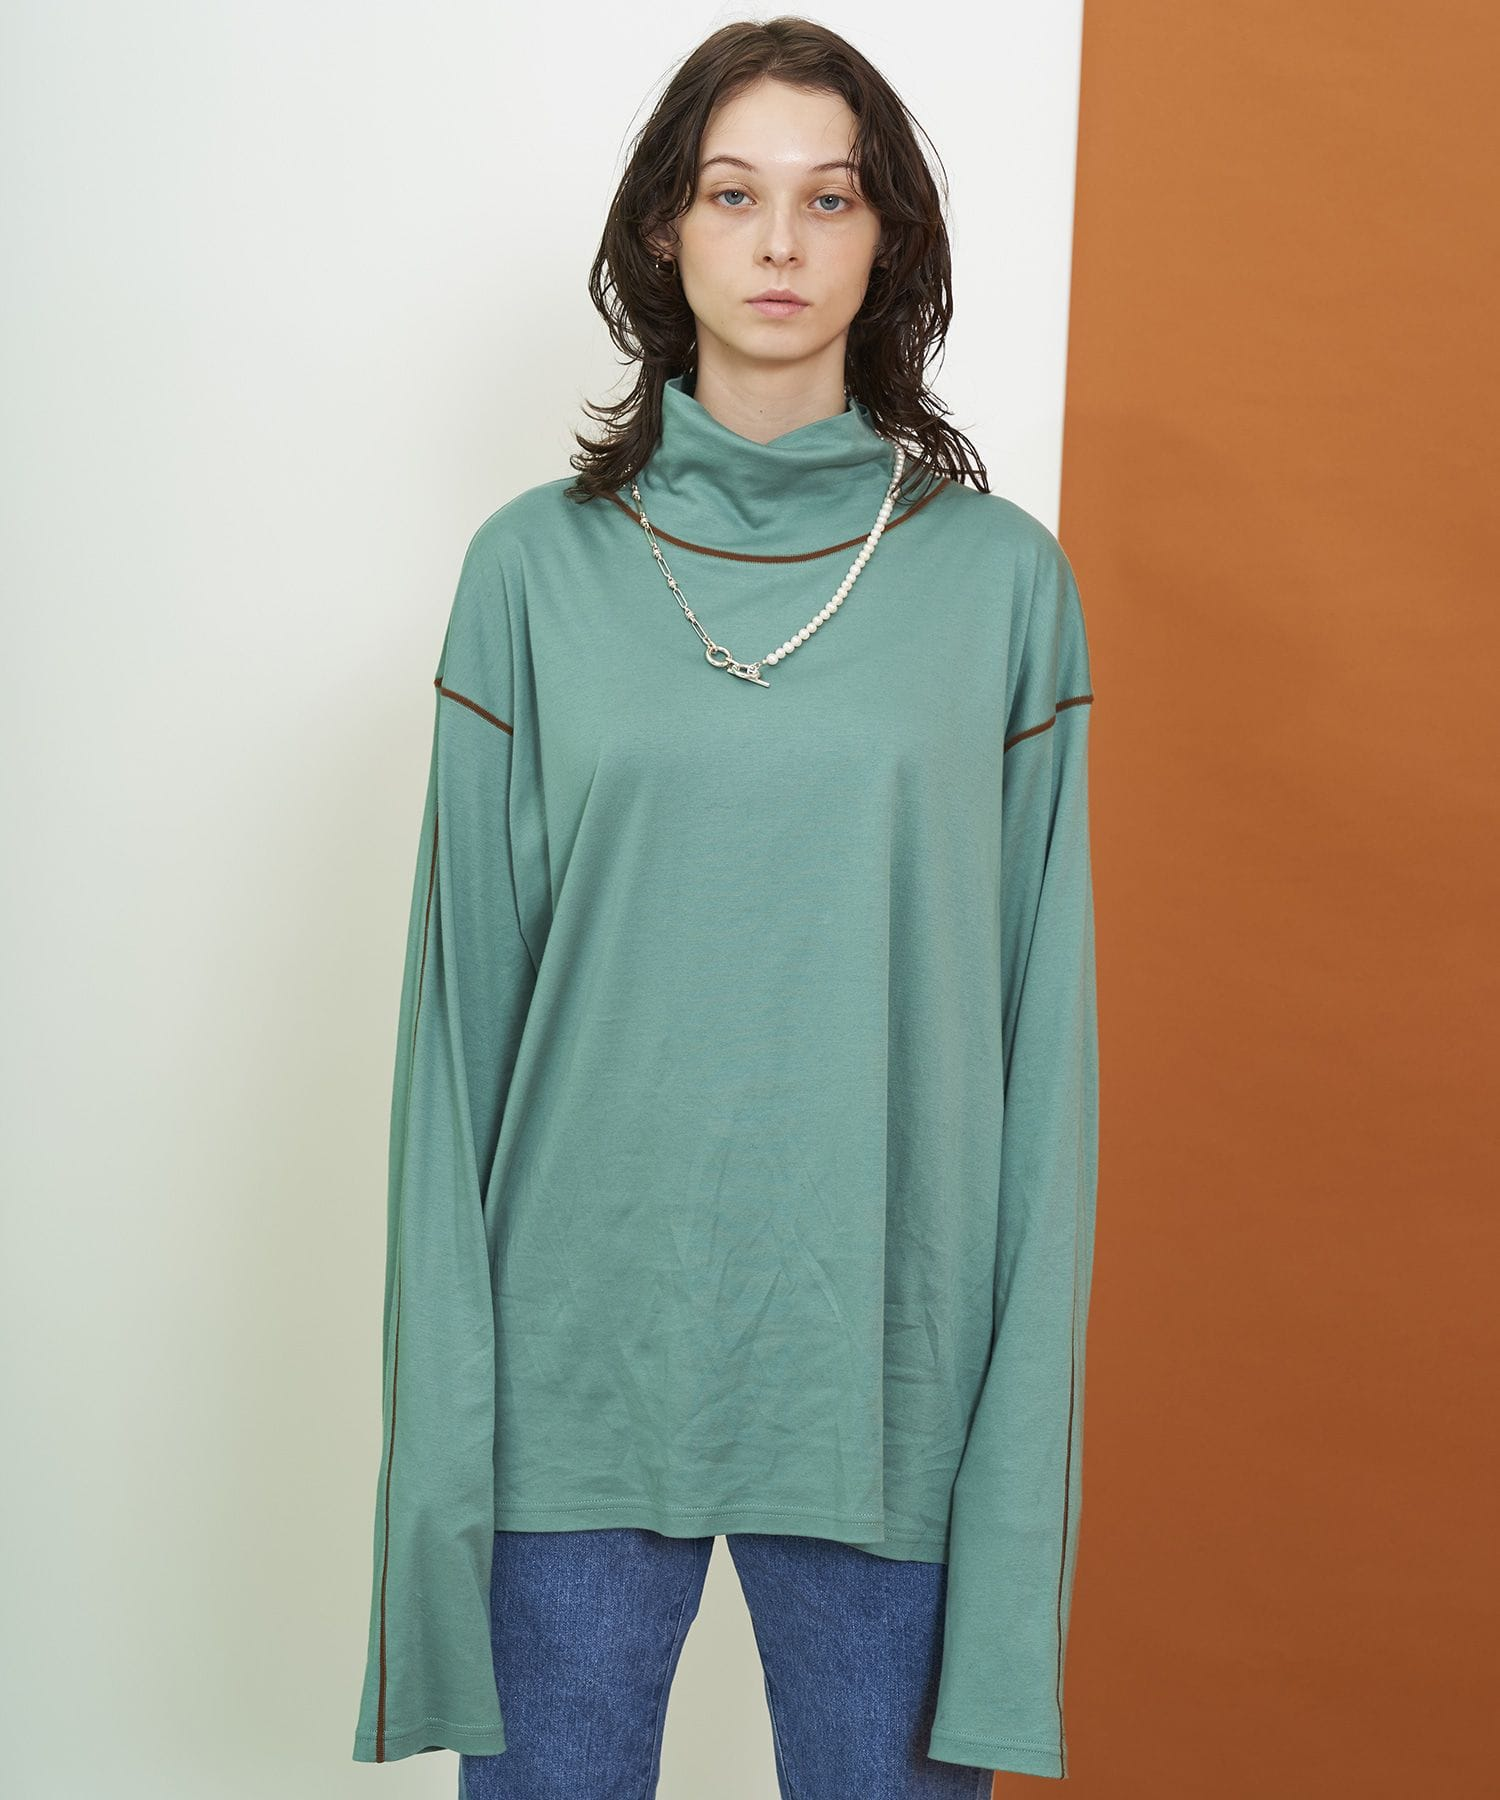 EMBROIDERY TURTLE NECK L/S TEE